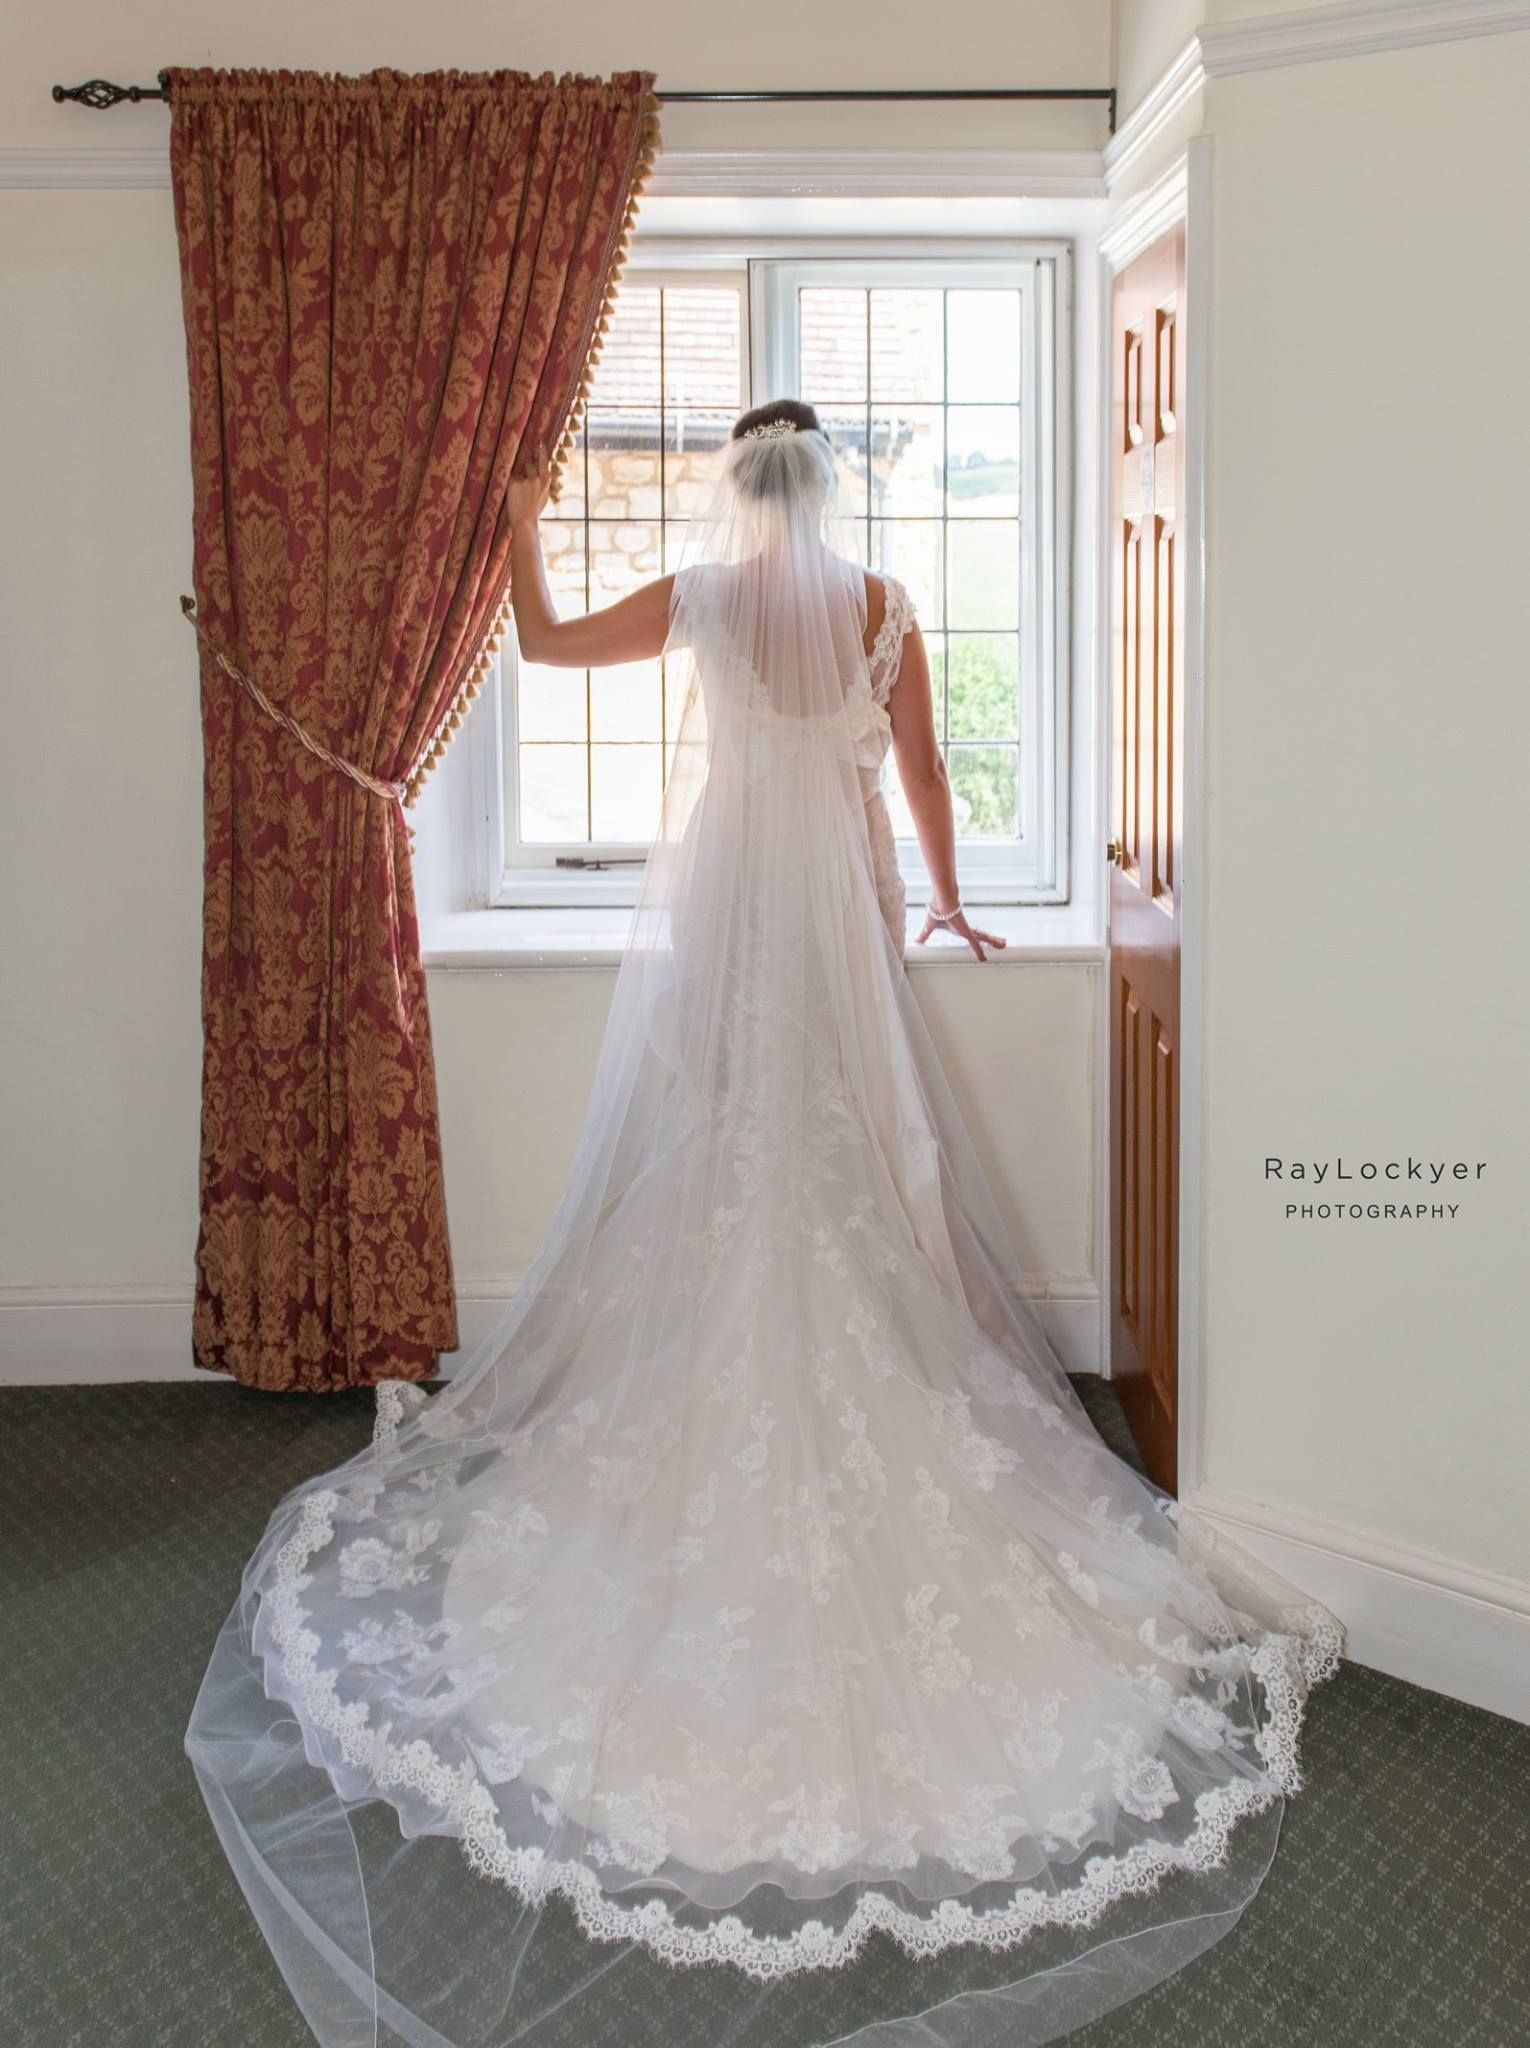 Ray Lockyer Yeovil Wedding Photographer - Our Bride waits for Dad to ...